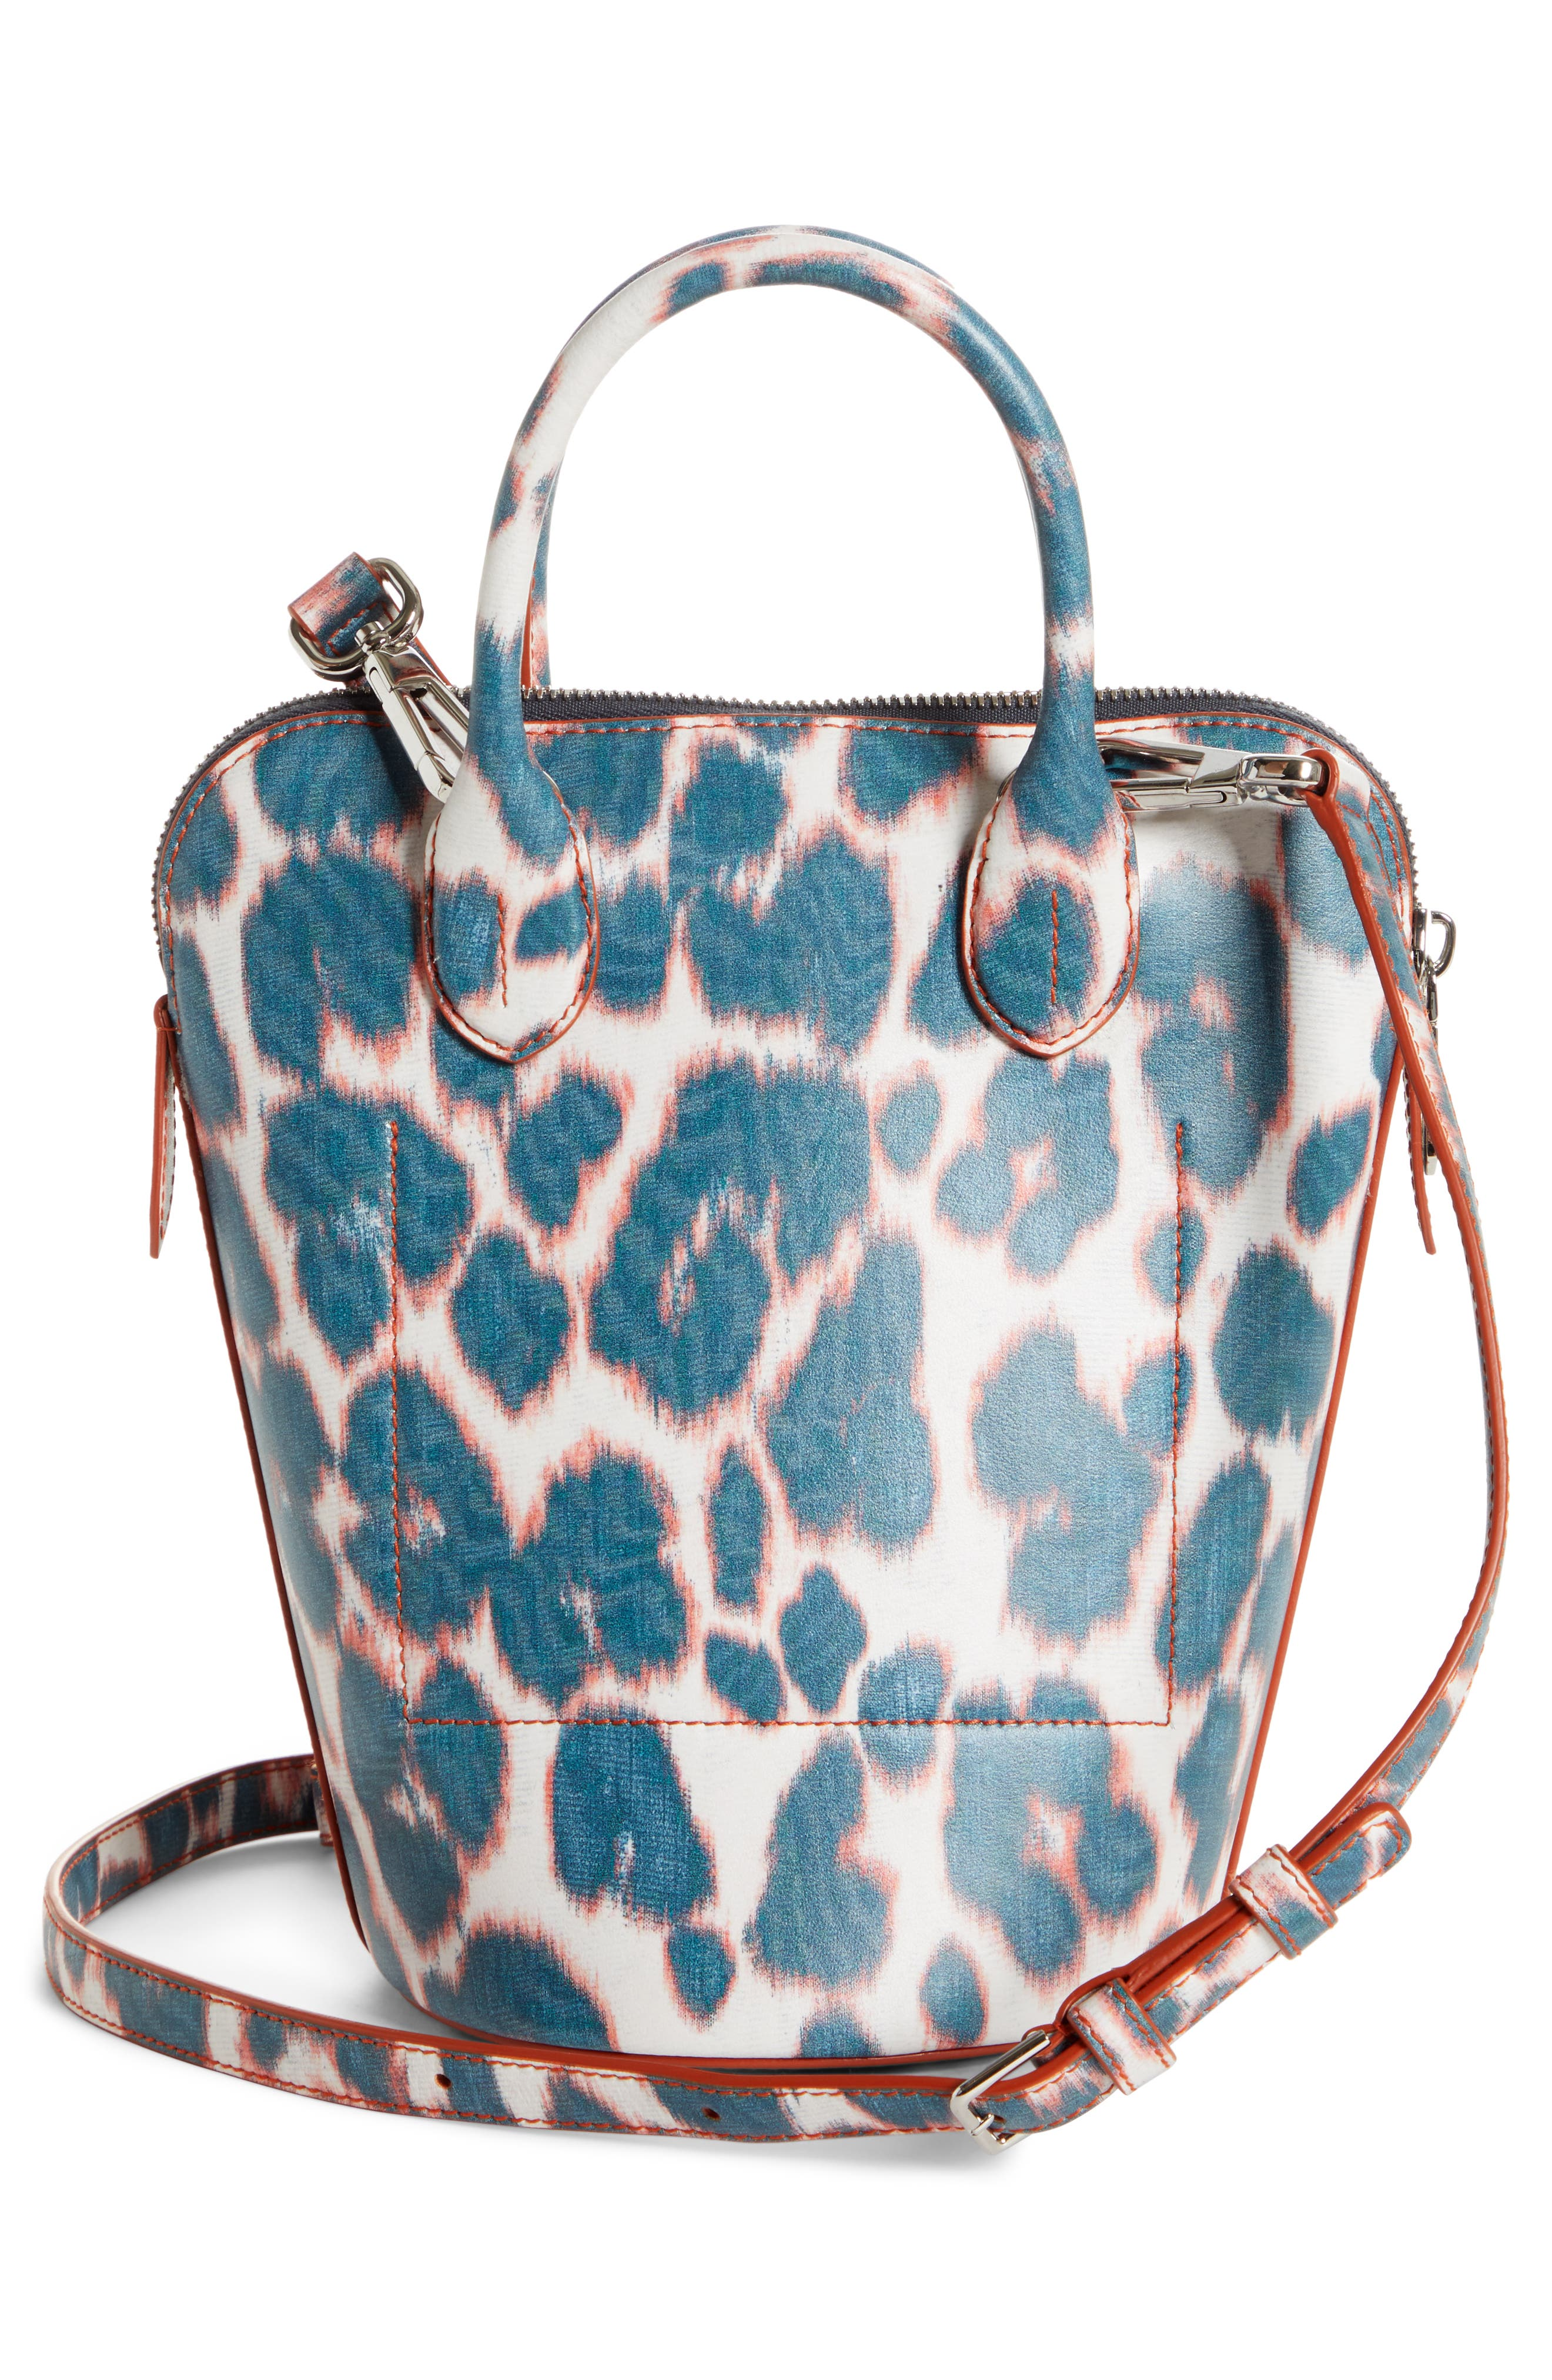 CALVIN KLEIN 205W39NYC, Mini Dalton Calfskin Bucket Bag, Alternate thumbnail 3, color, ELECTRIC PANTHER